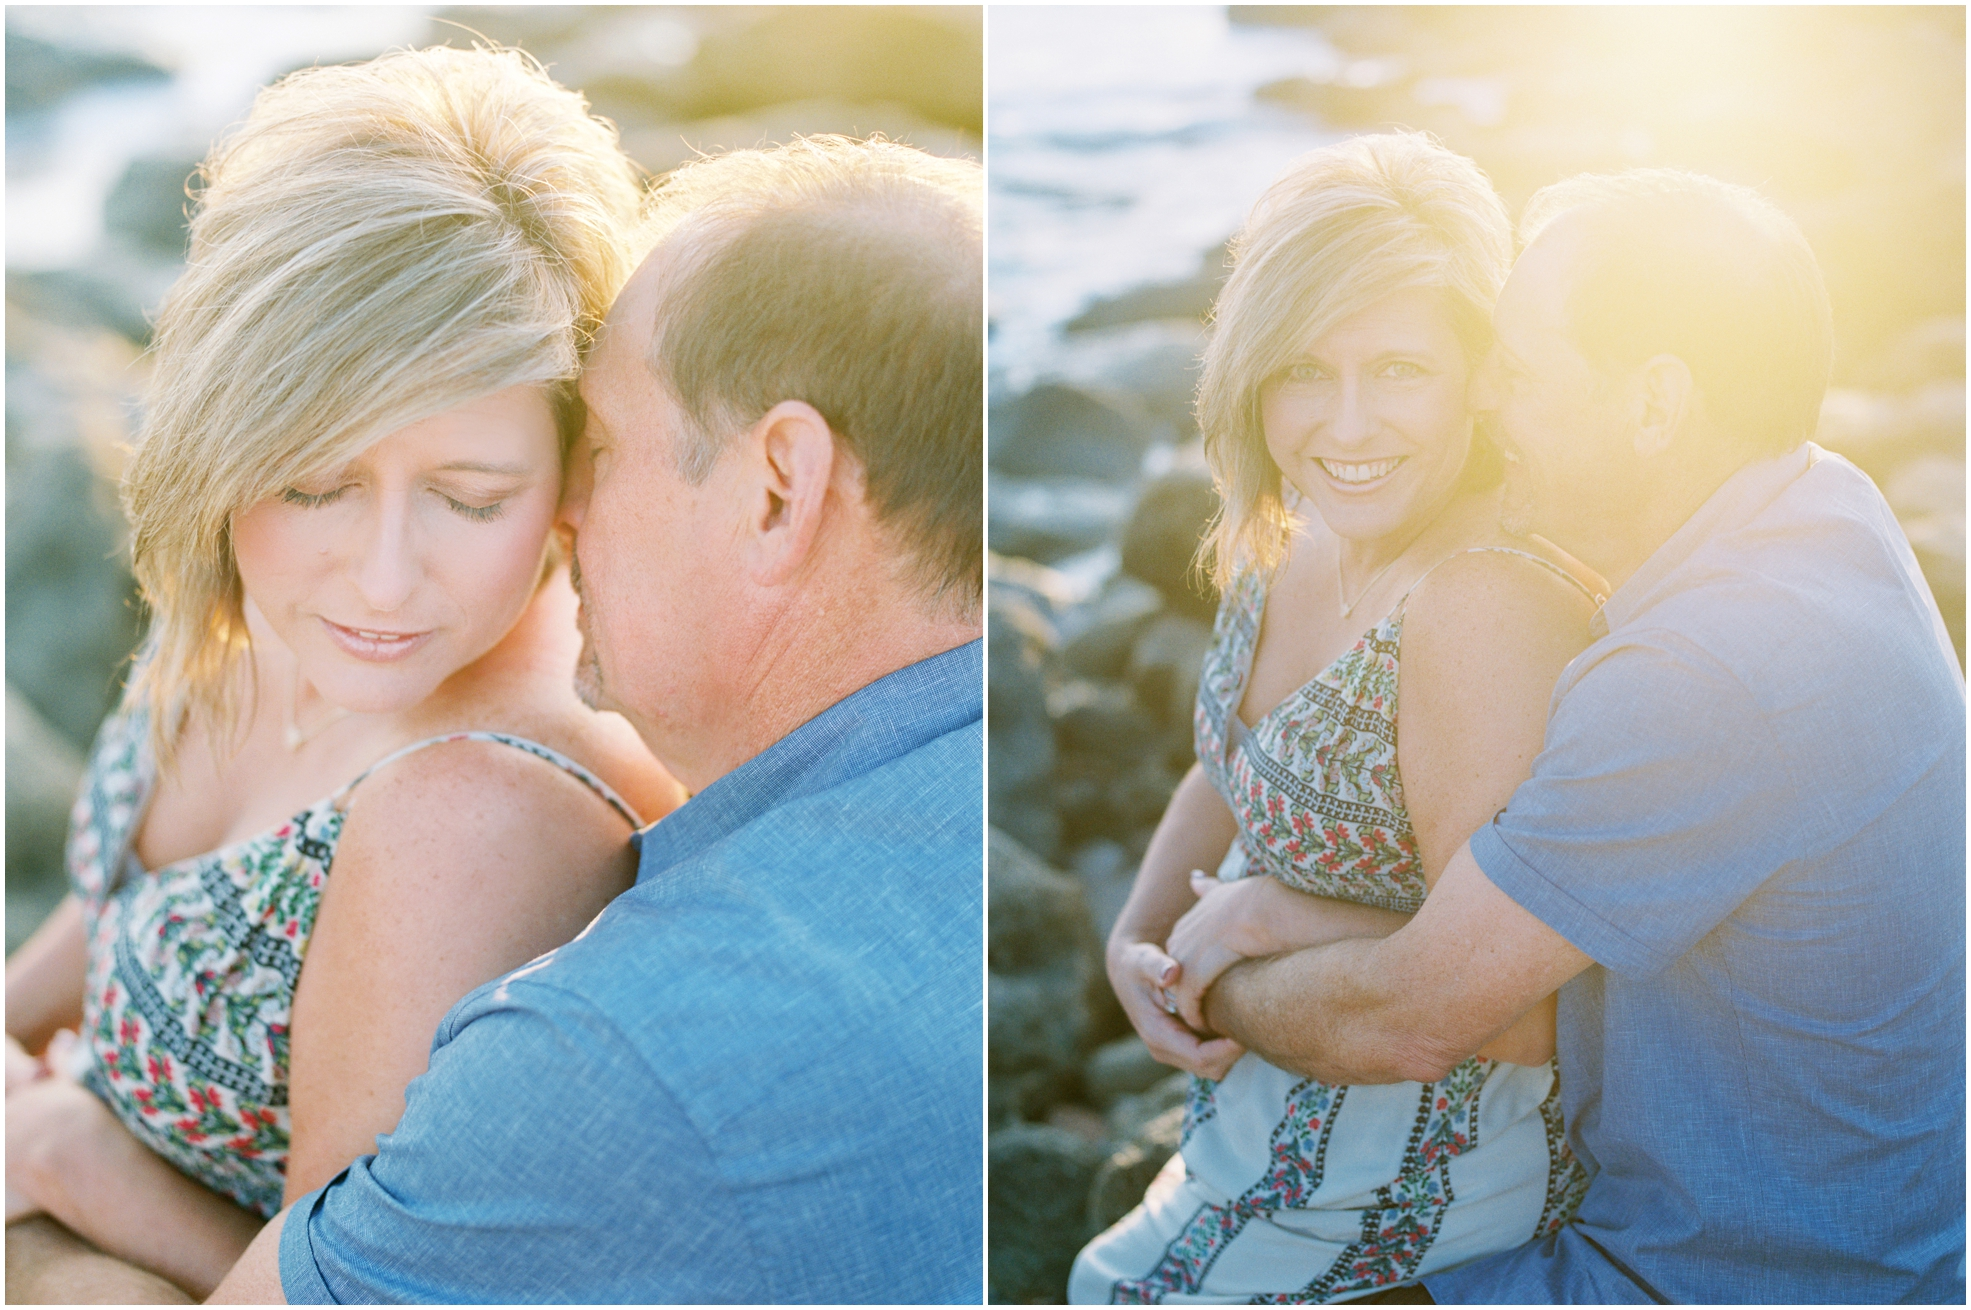 Lisa Silva Photography- Jacksonville, St. Augustine, Amelia Island, Ponte Vedra Beach, North East Florida Fine Art Film Photographer- Anniversary Session at Washington Oaks in Palm Coast, Florida_0008.jpg